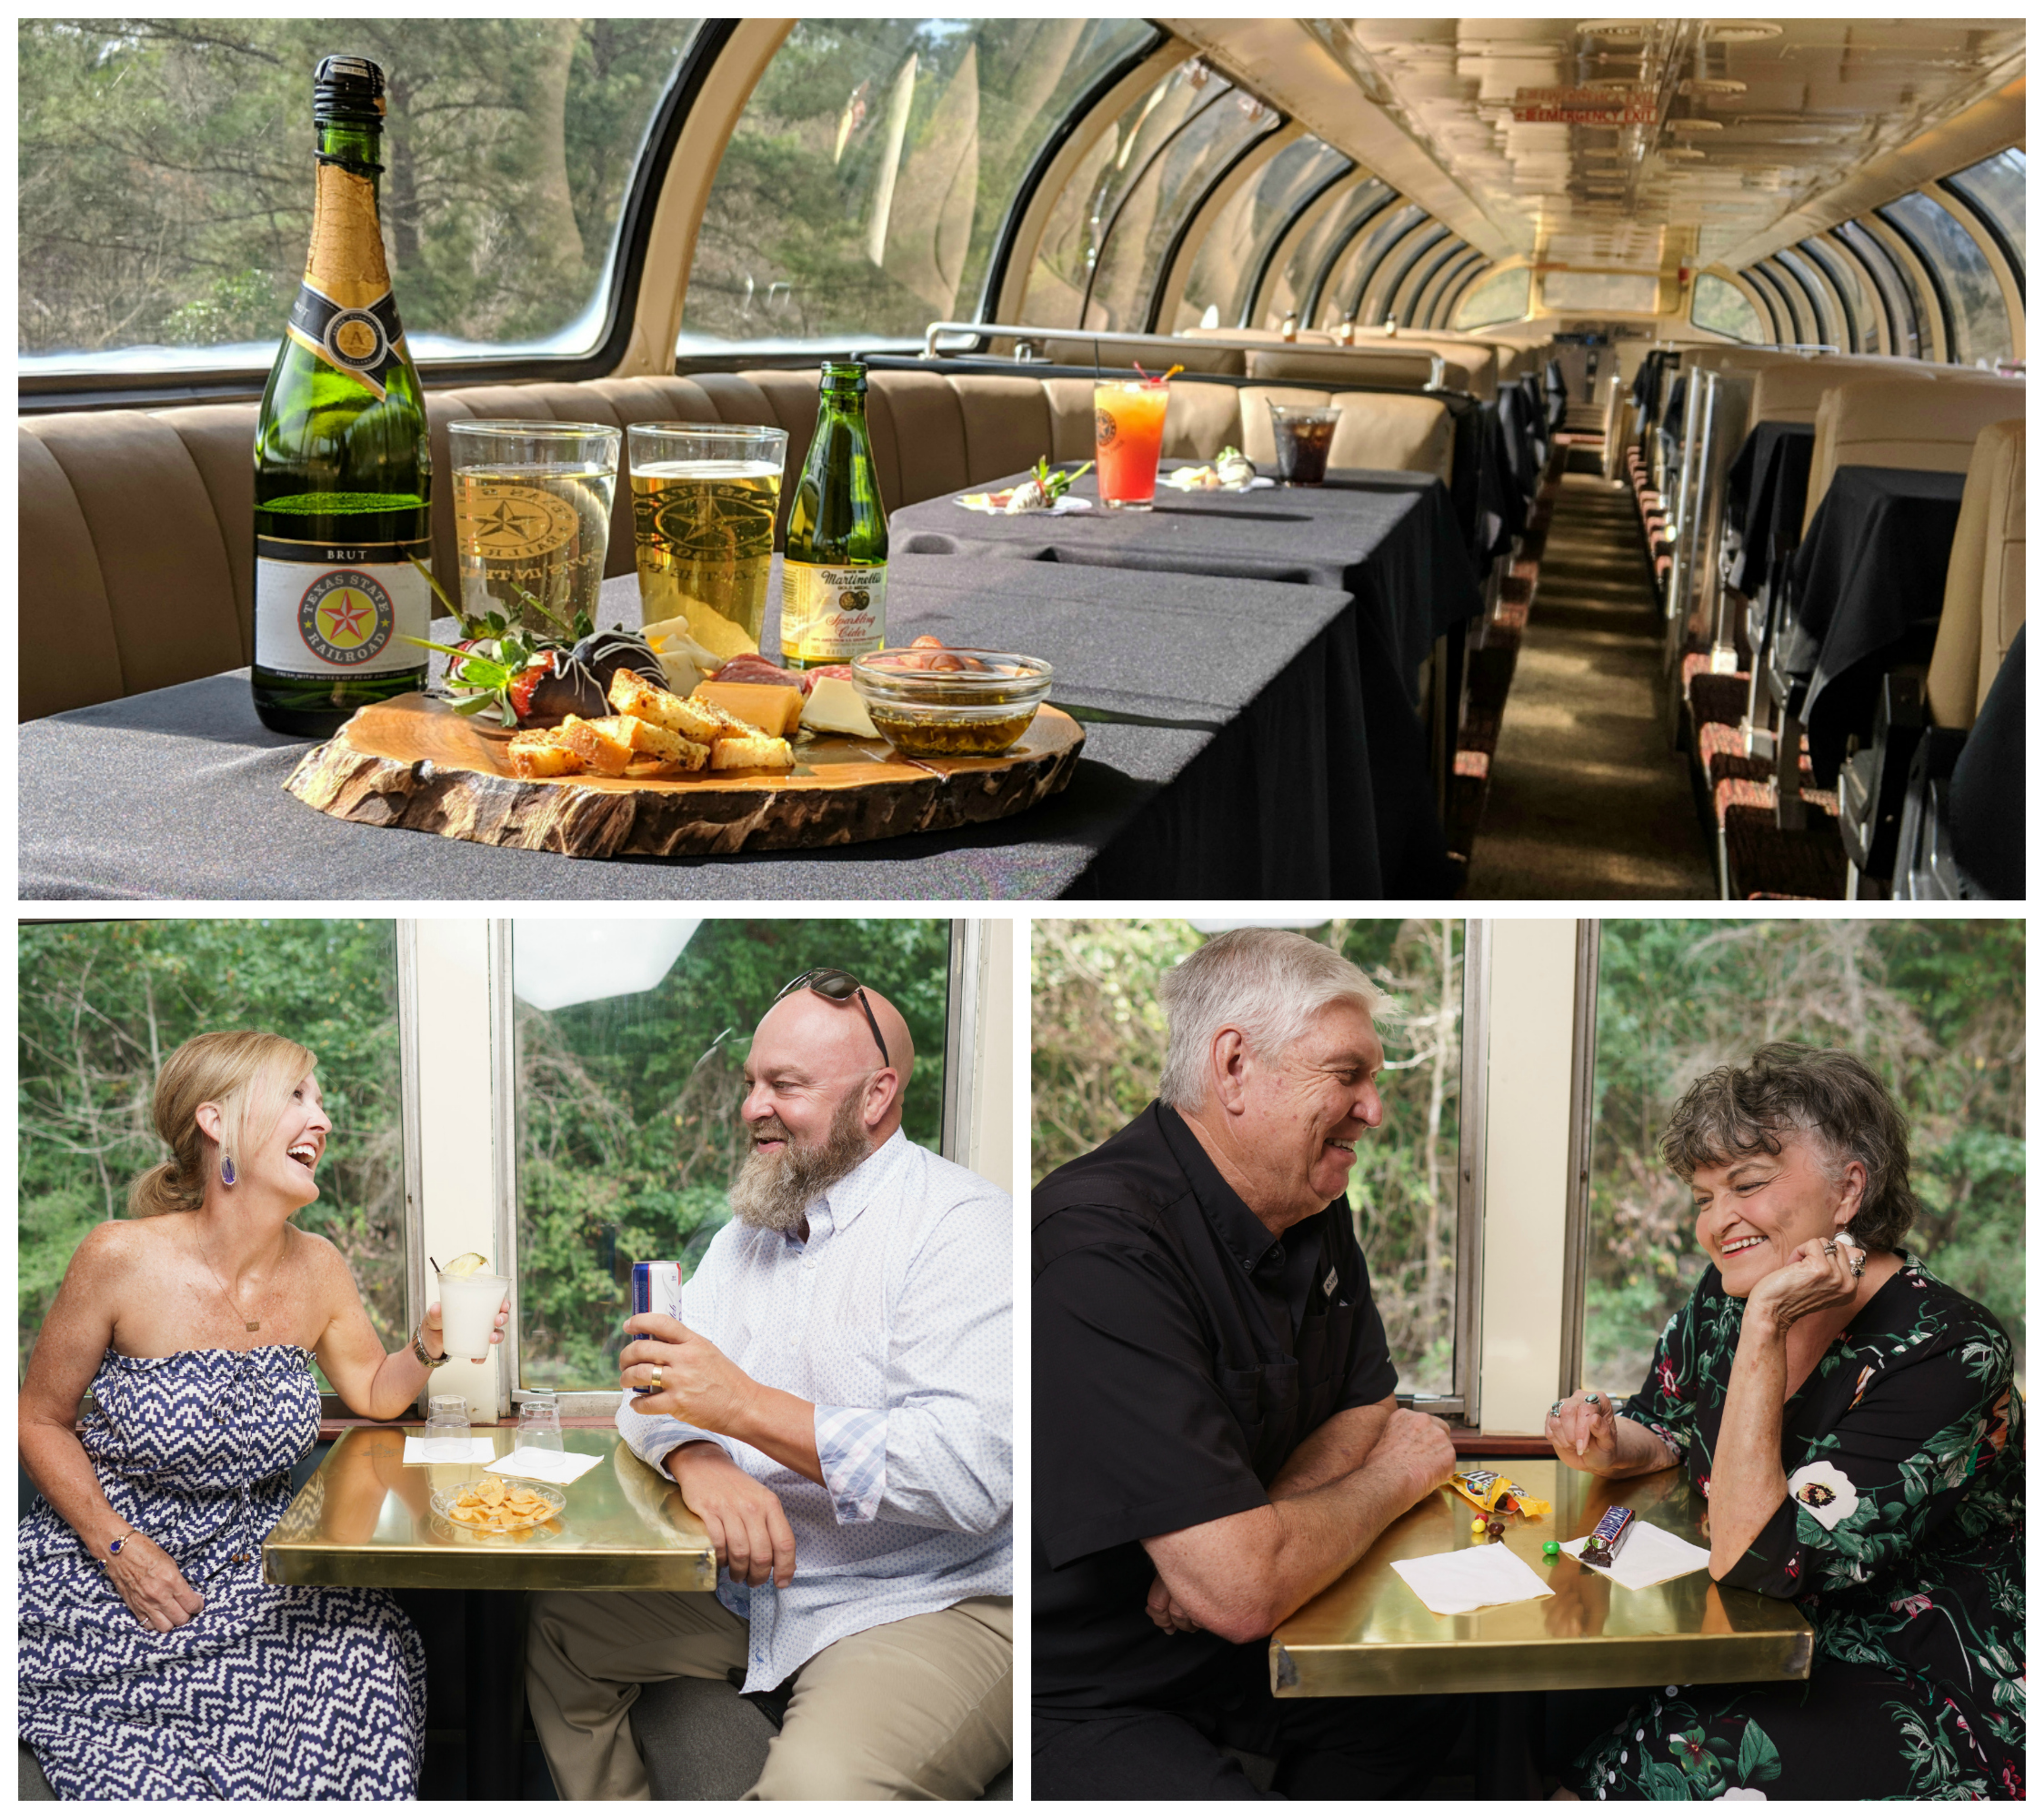 Wines and Pints in the Pines at Texas State Railroad